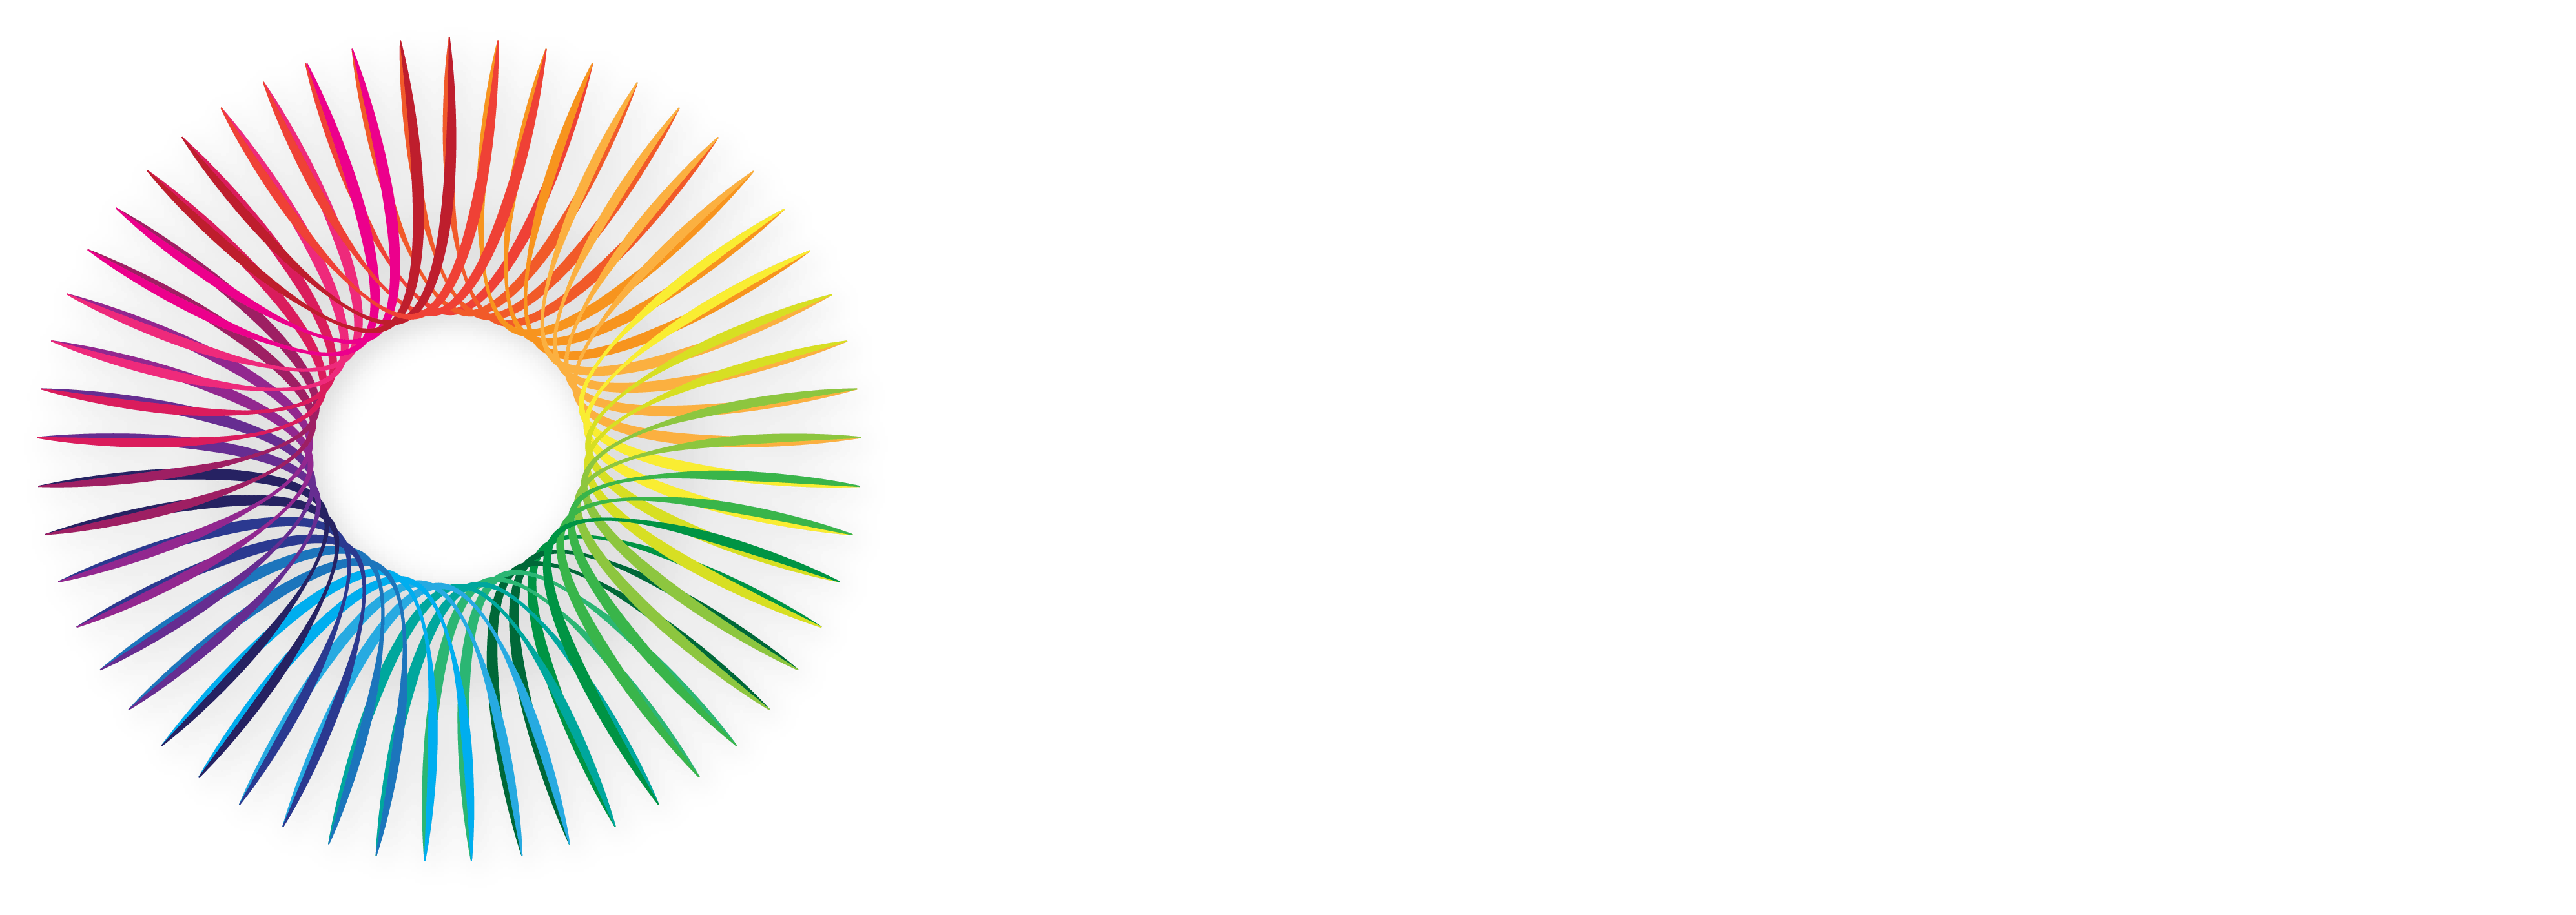 UKSBM logo with text